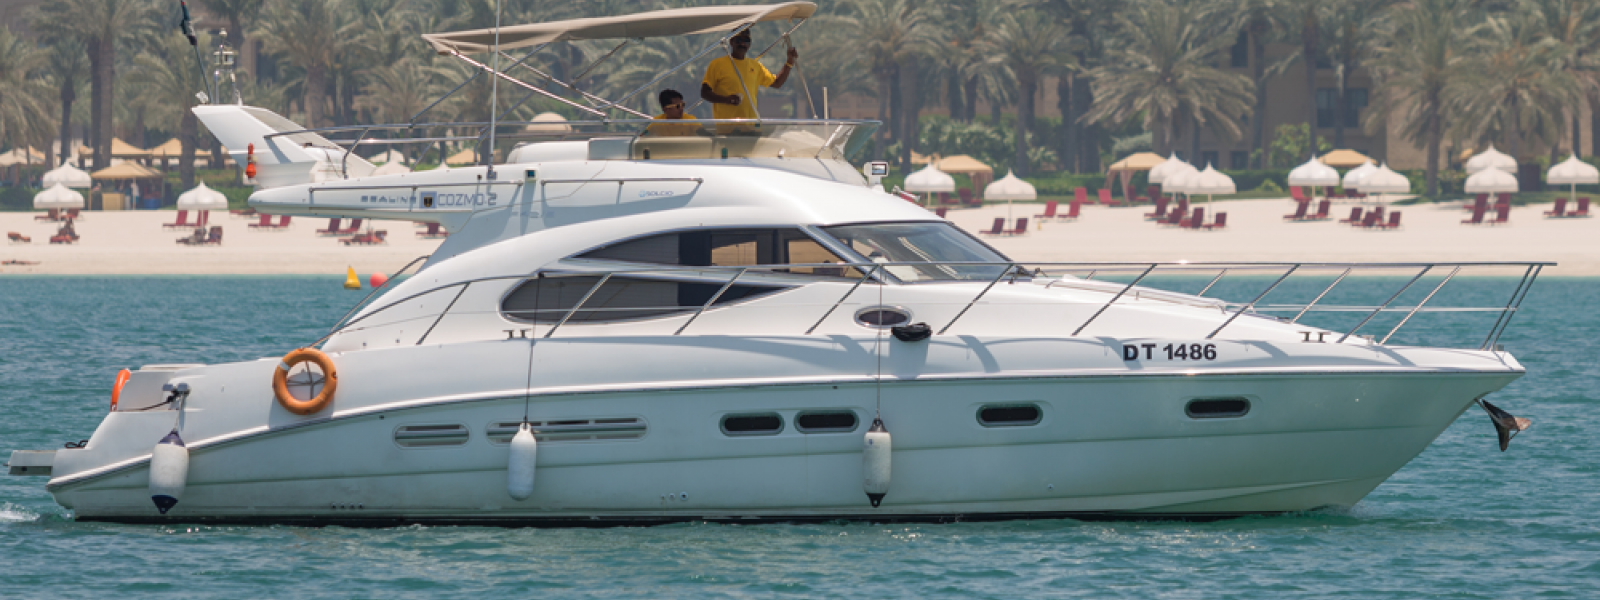 45 Feet Yacht - Cruise through Atlantis the Palm & One & Only